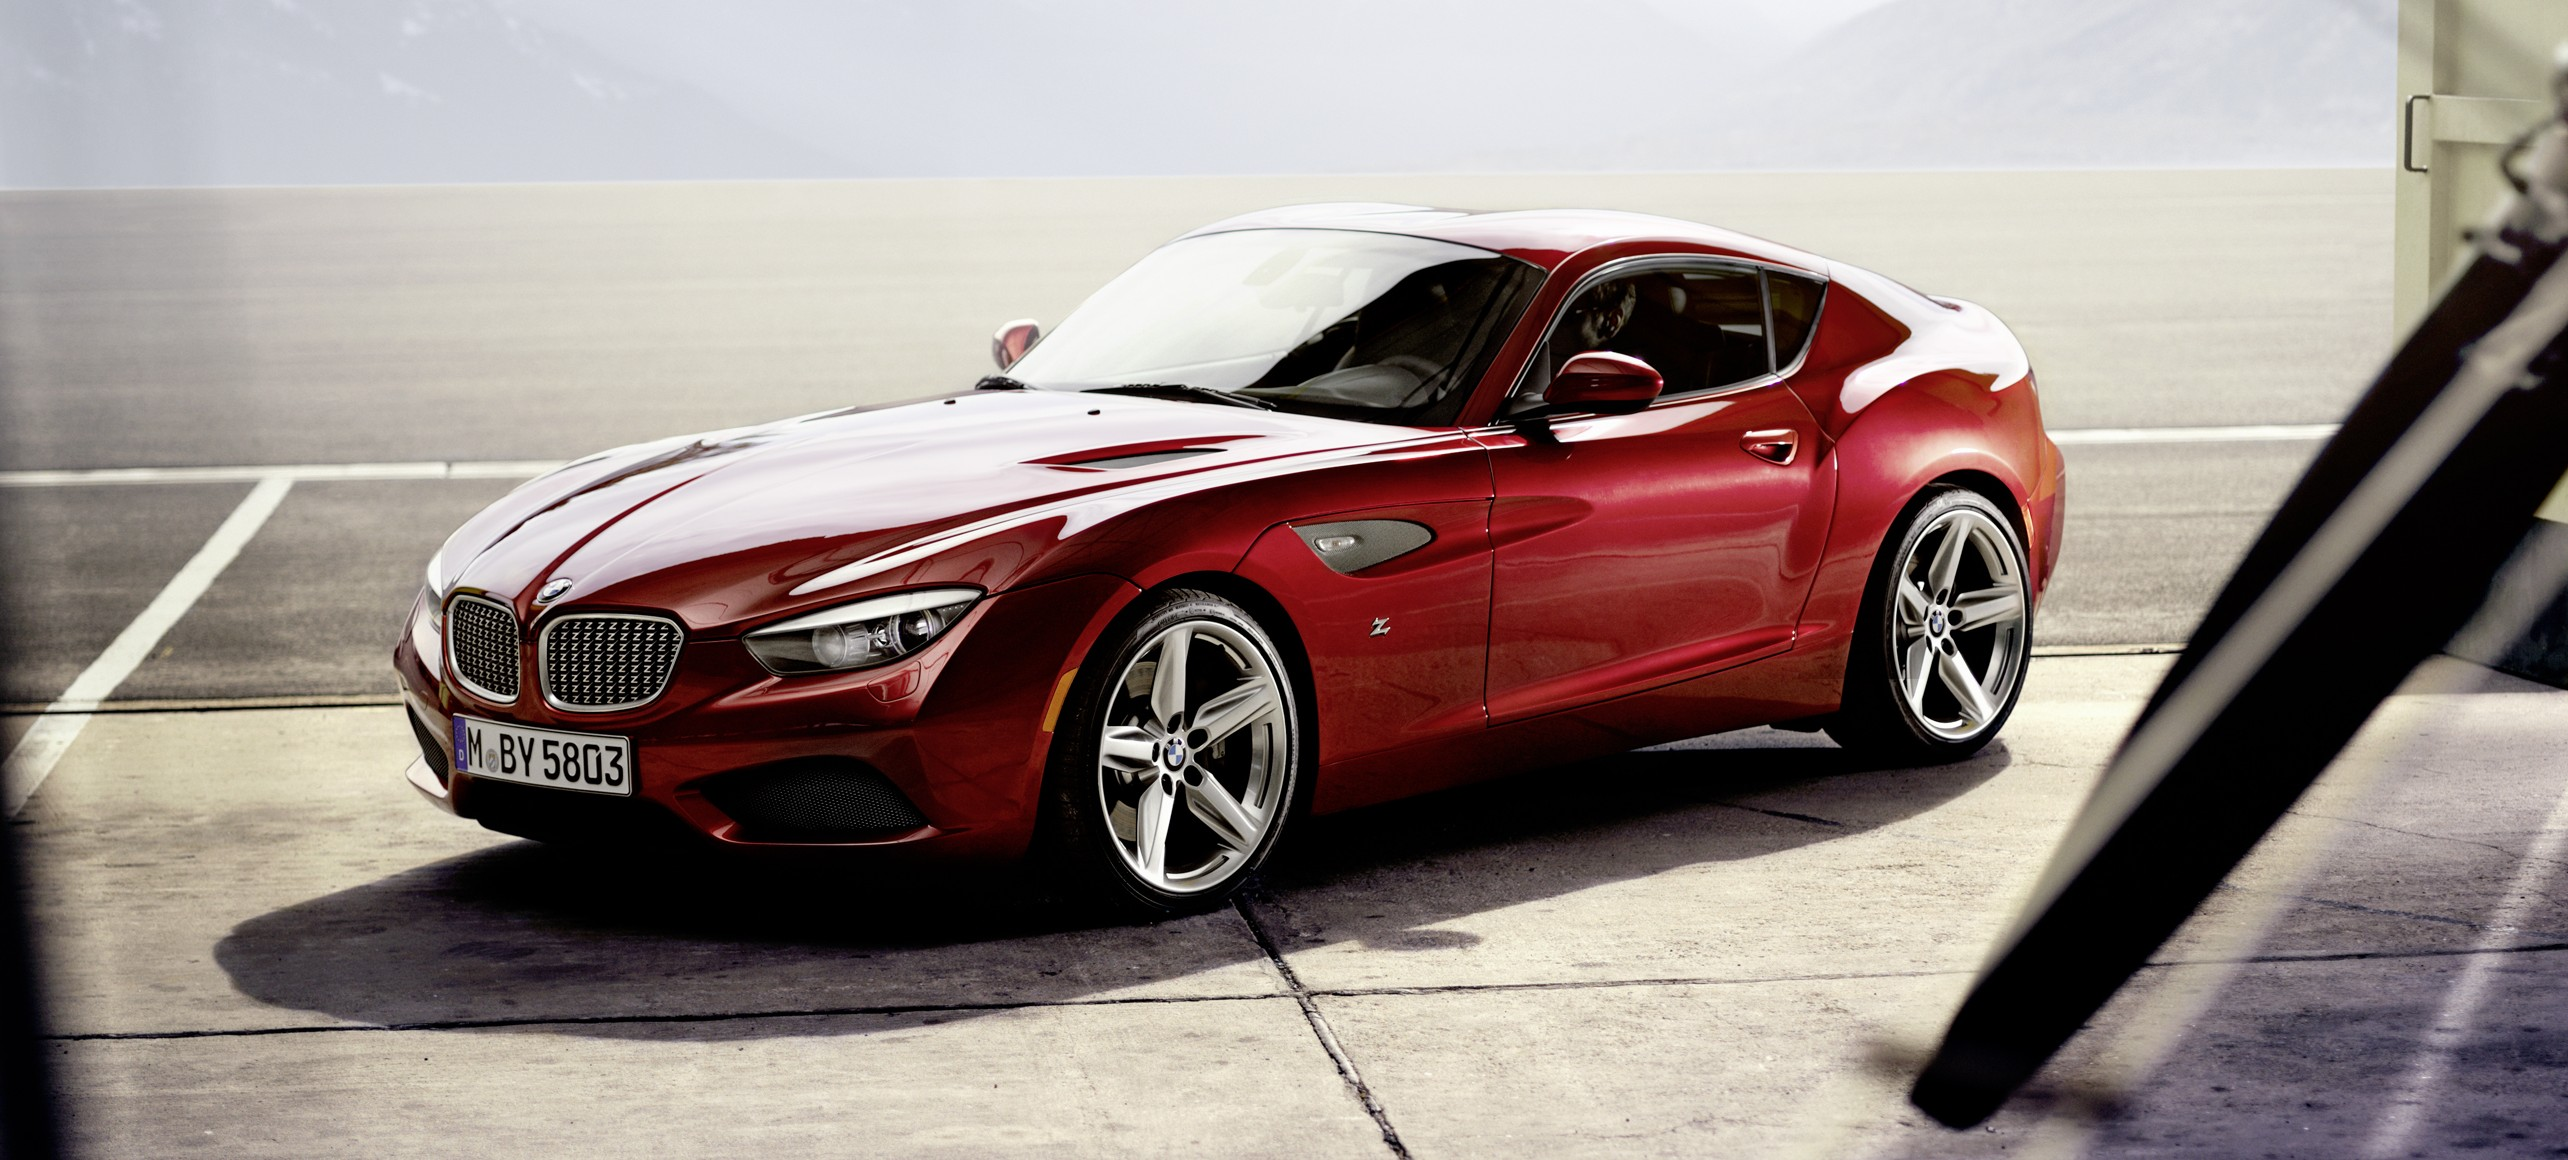 Bmw Zagato Coupe Injects More Sexy Into The Z4 Image 108588